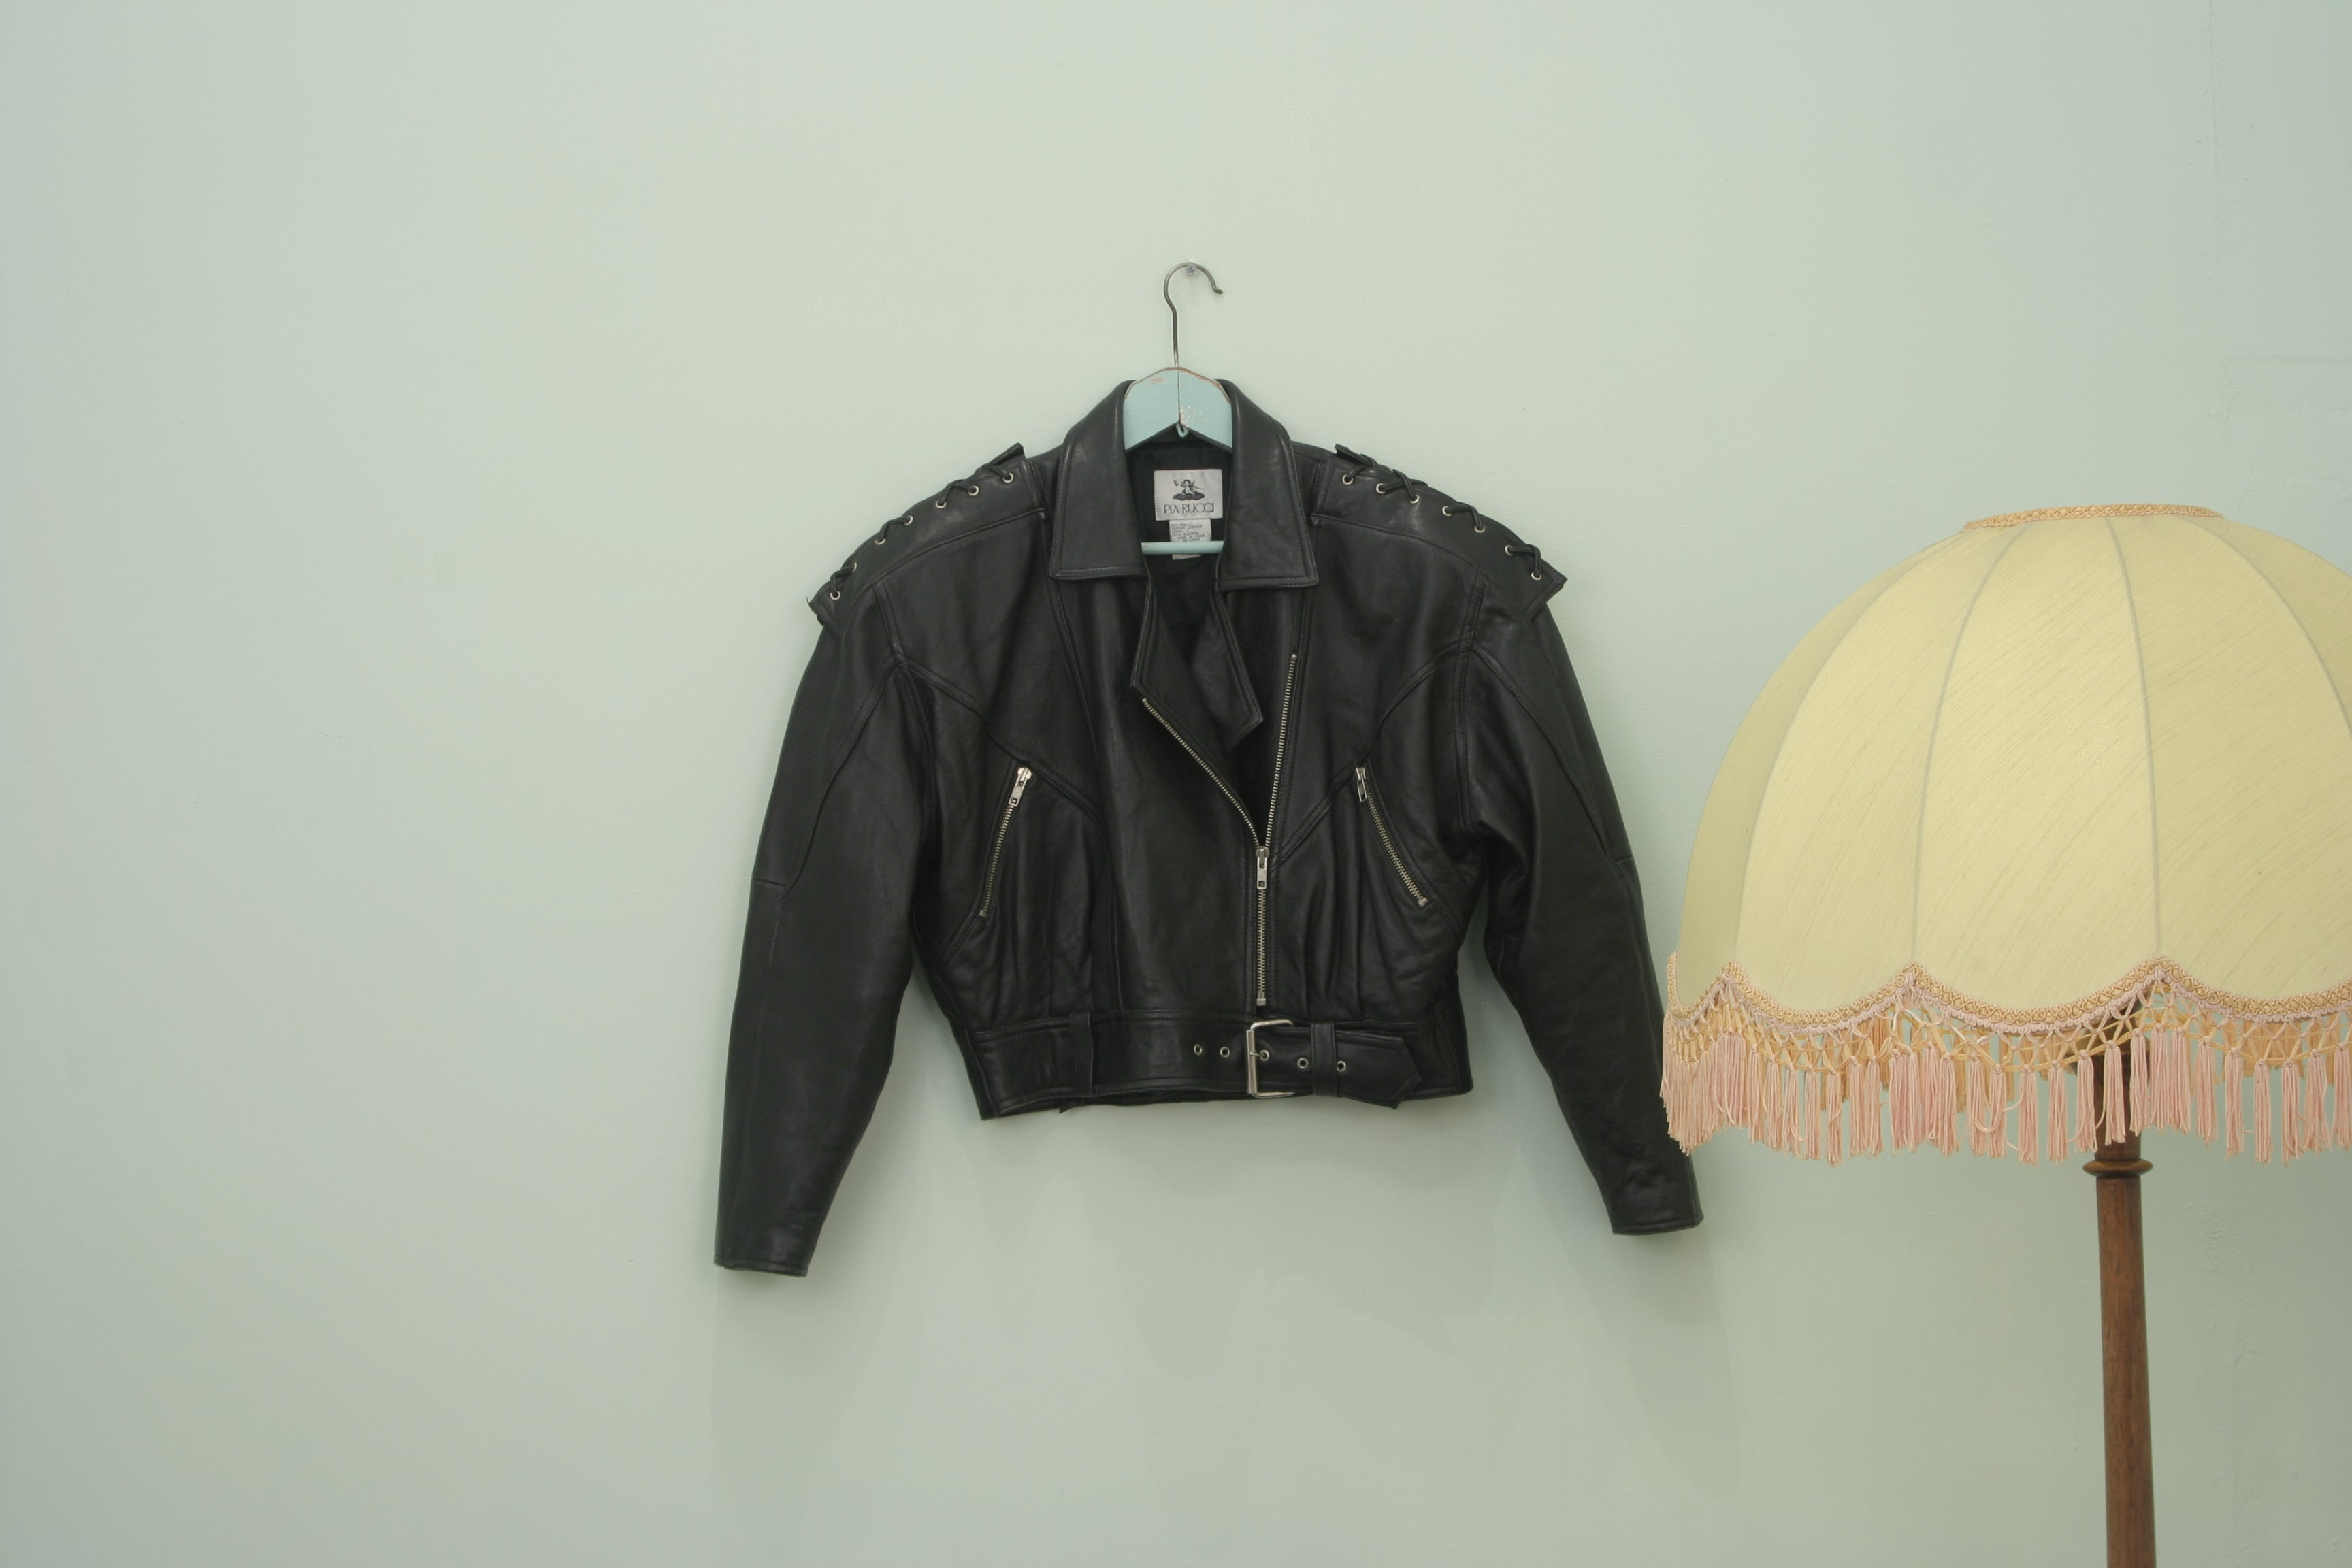 Incredible Vintage Pia Rucci Laced up leather biker